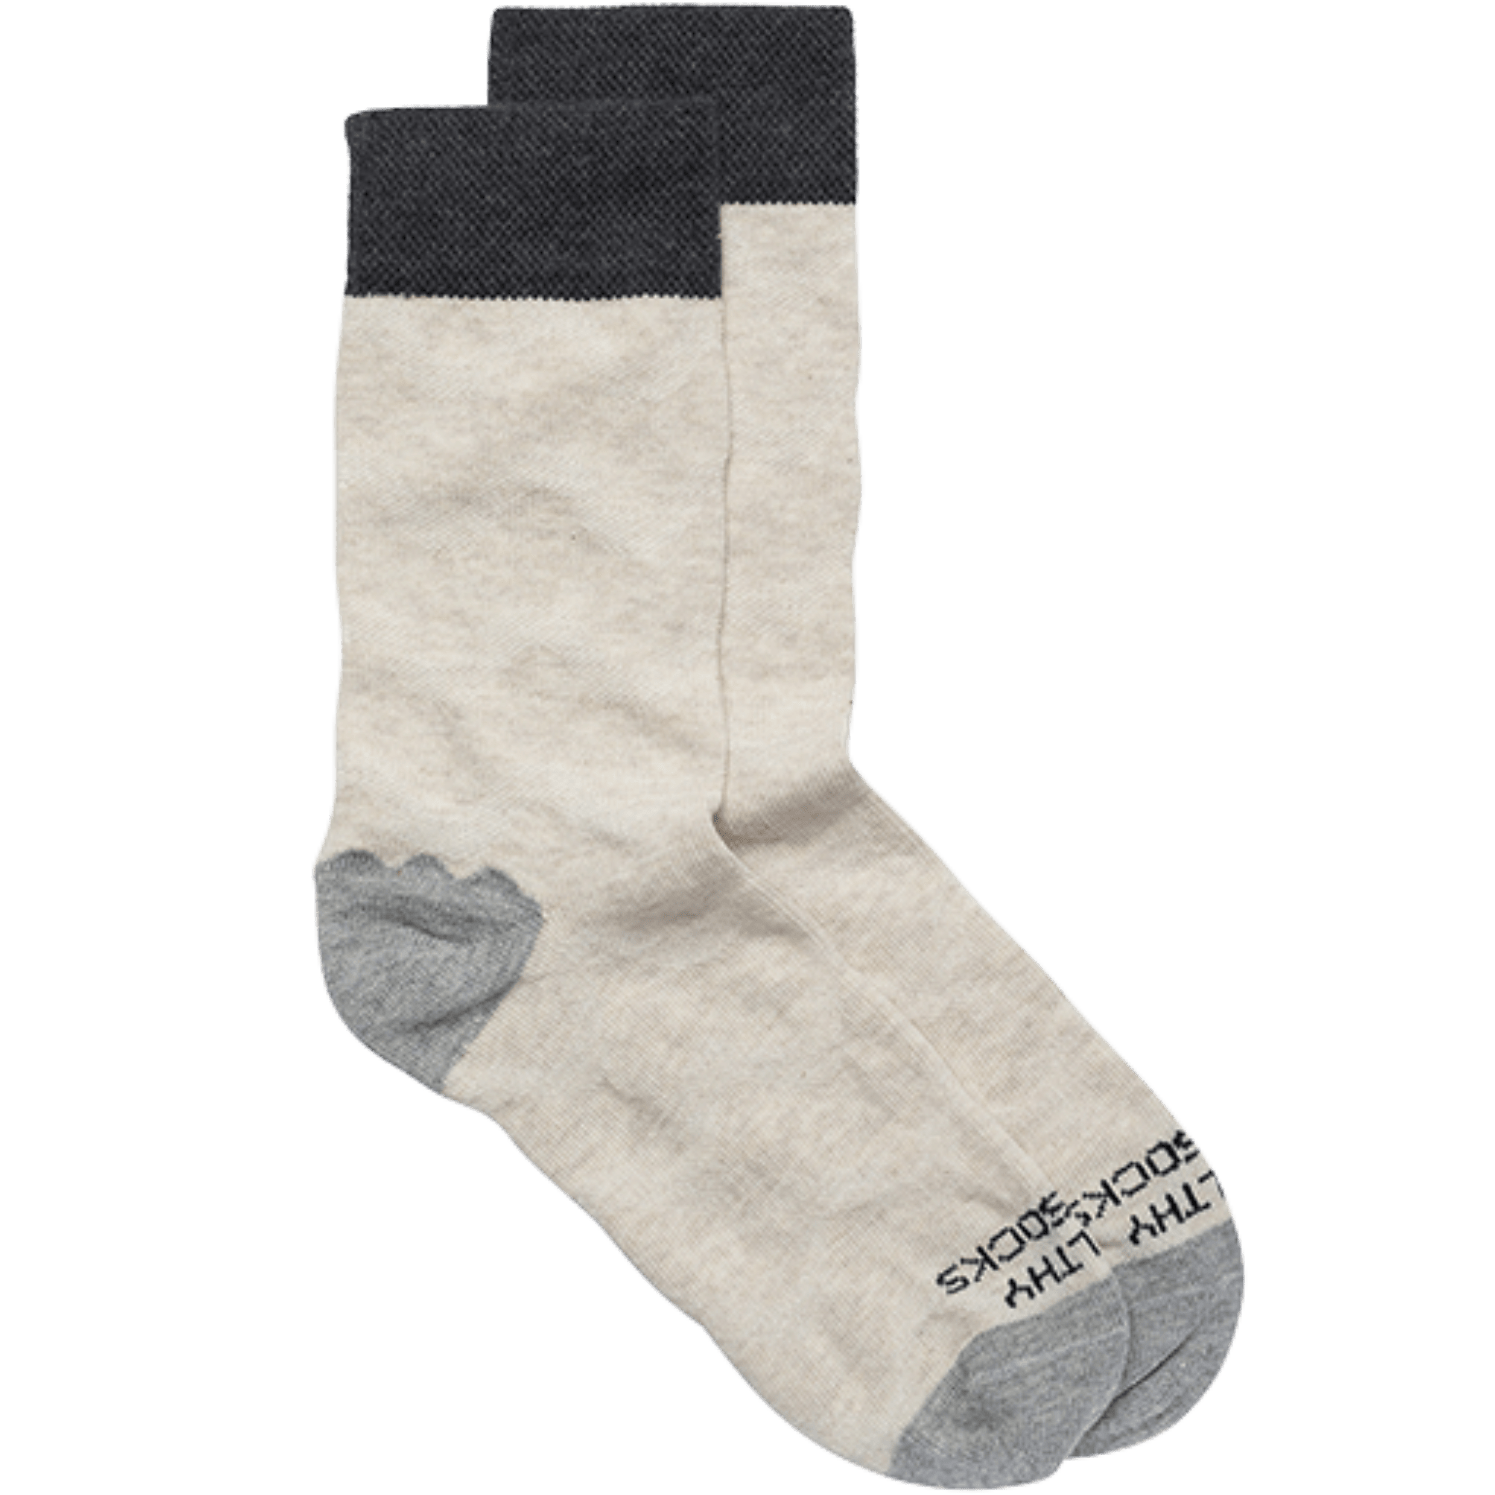 Dab ladies and women's Healthy Seas socks, upcycled from ghost fishing nets, ecological and sustainable